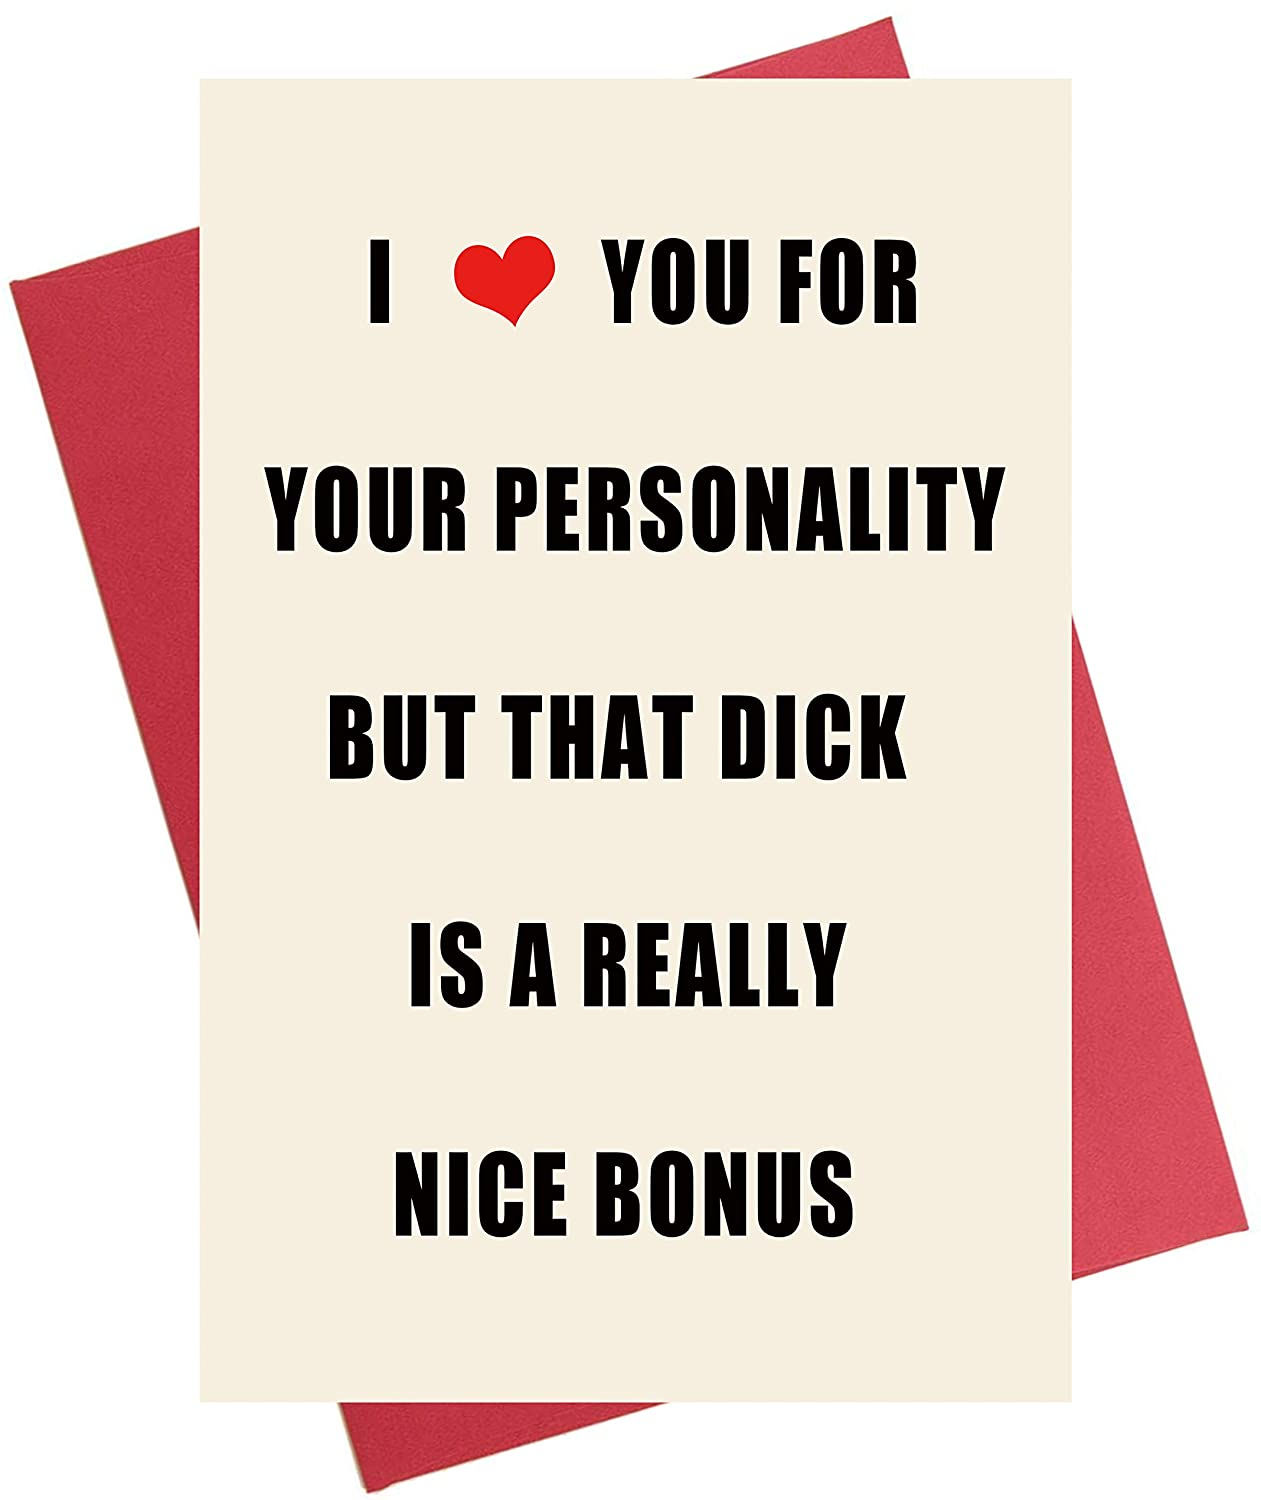 Naughty Anniversary Card | Rude Funny Birthday Card for Boyfriend, Husband, Him, Fiance